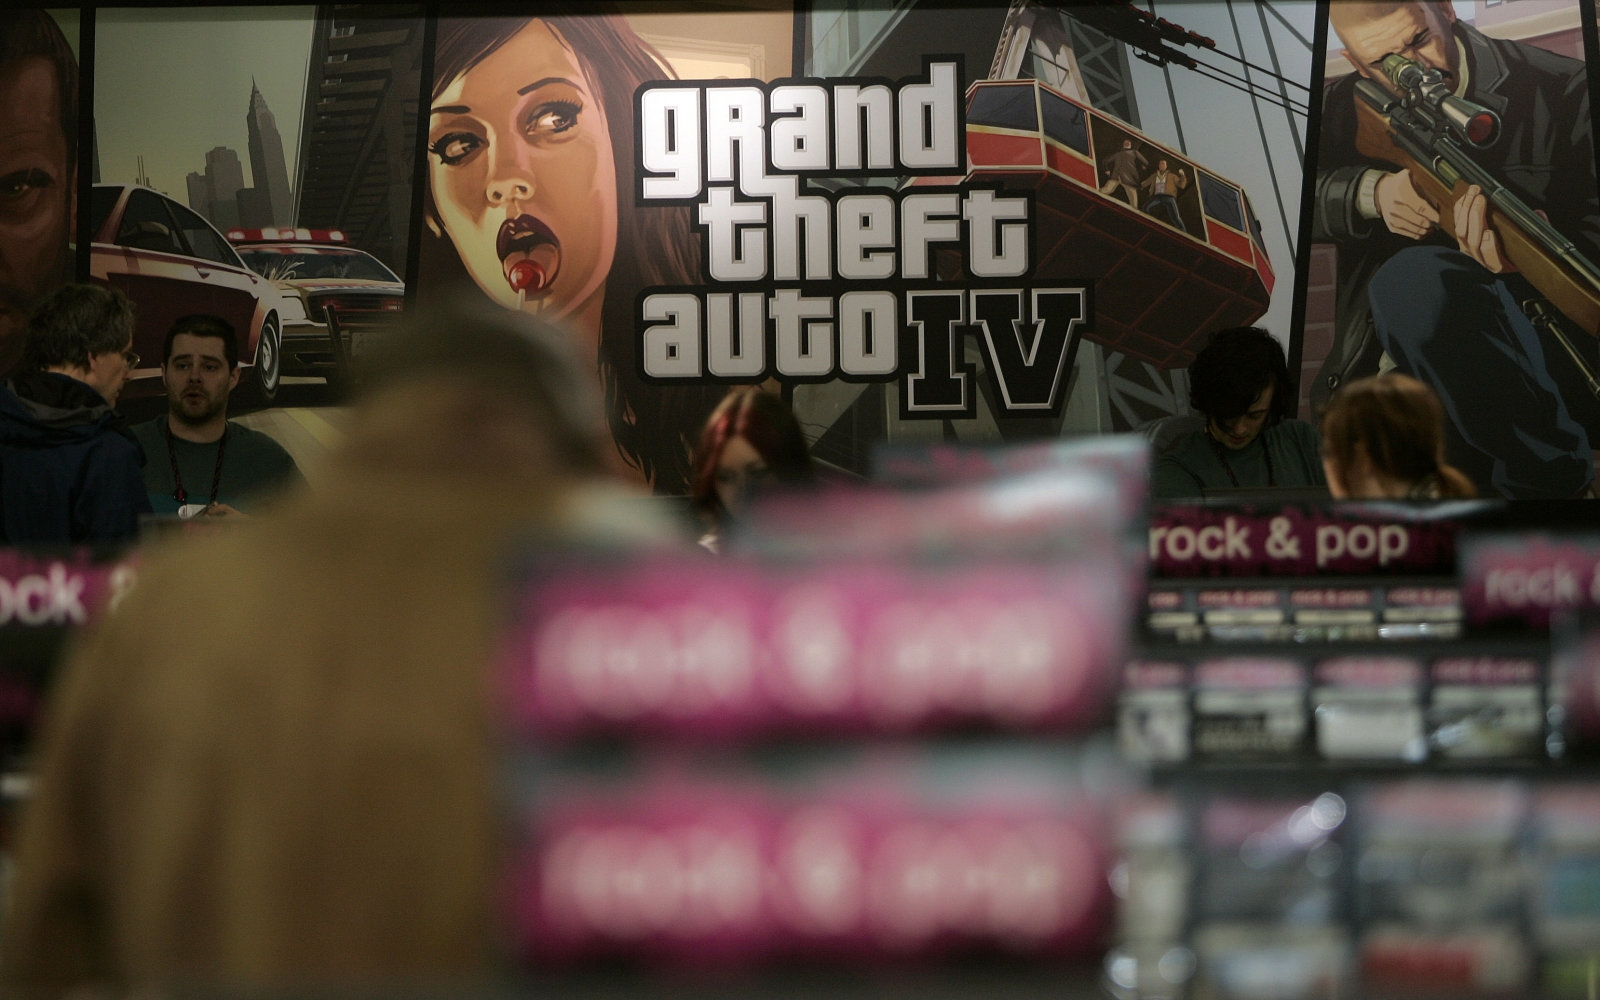 'GTA4' leaves Steam after an old Microsoft service breaks game sales | DeviceDaily.com